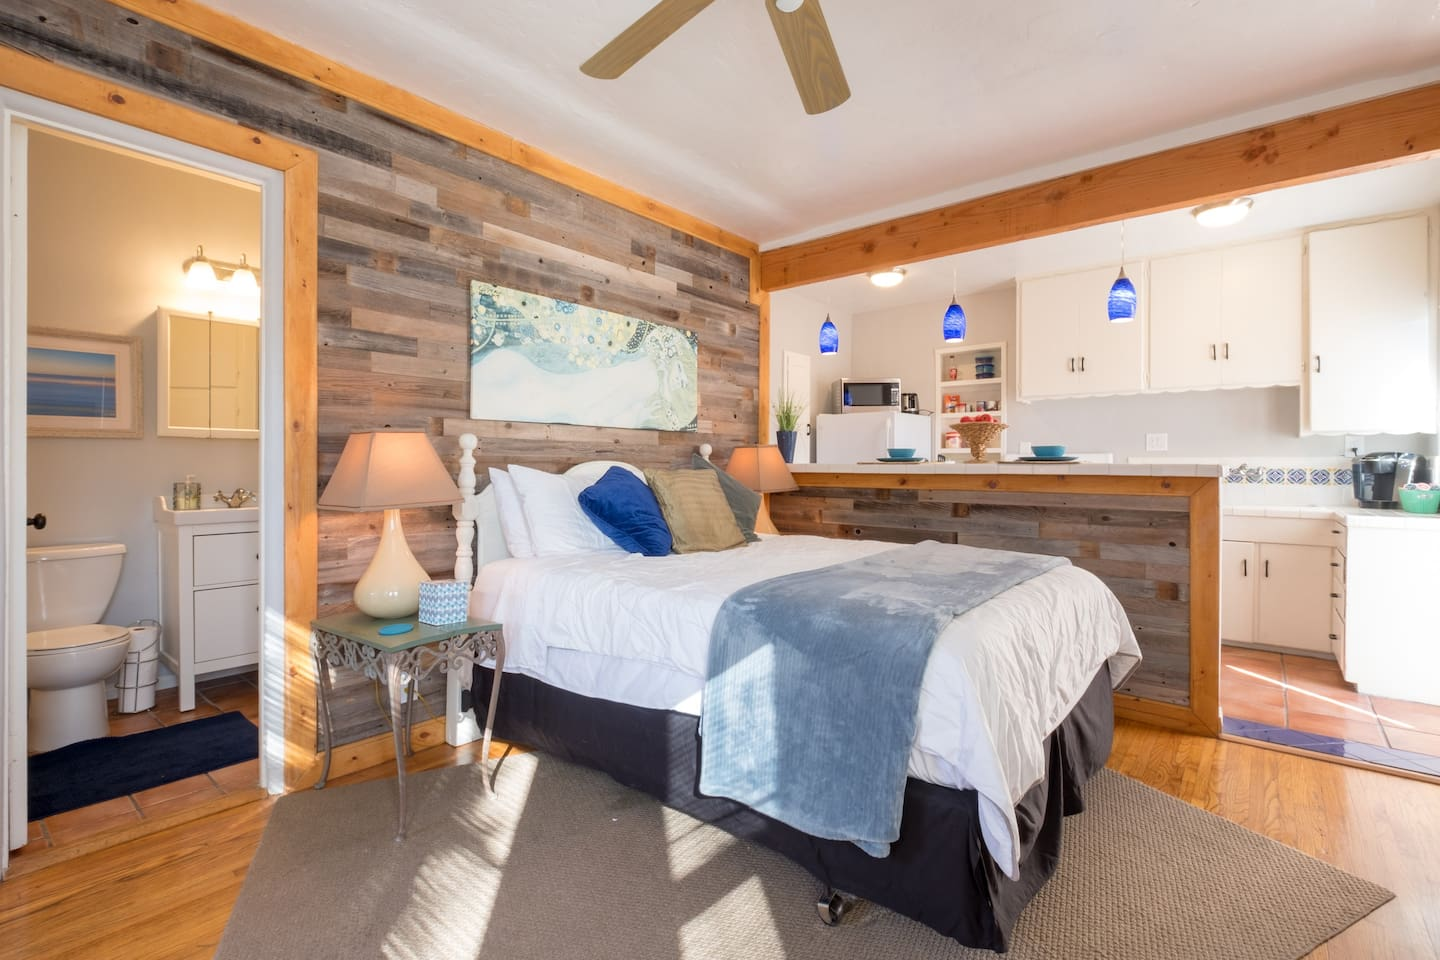 Our spacious studio unit has reclaimed wood and a beautiful open floor plan